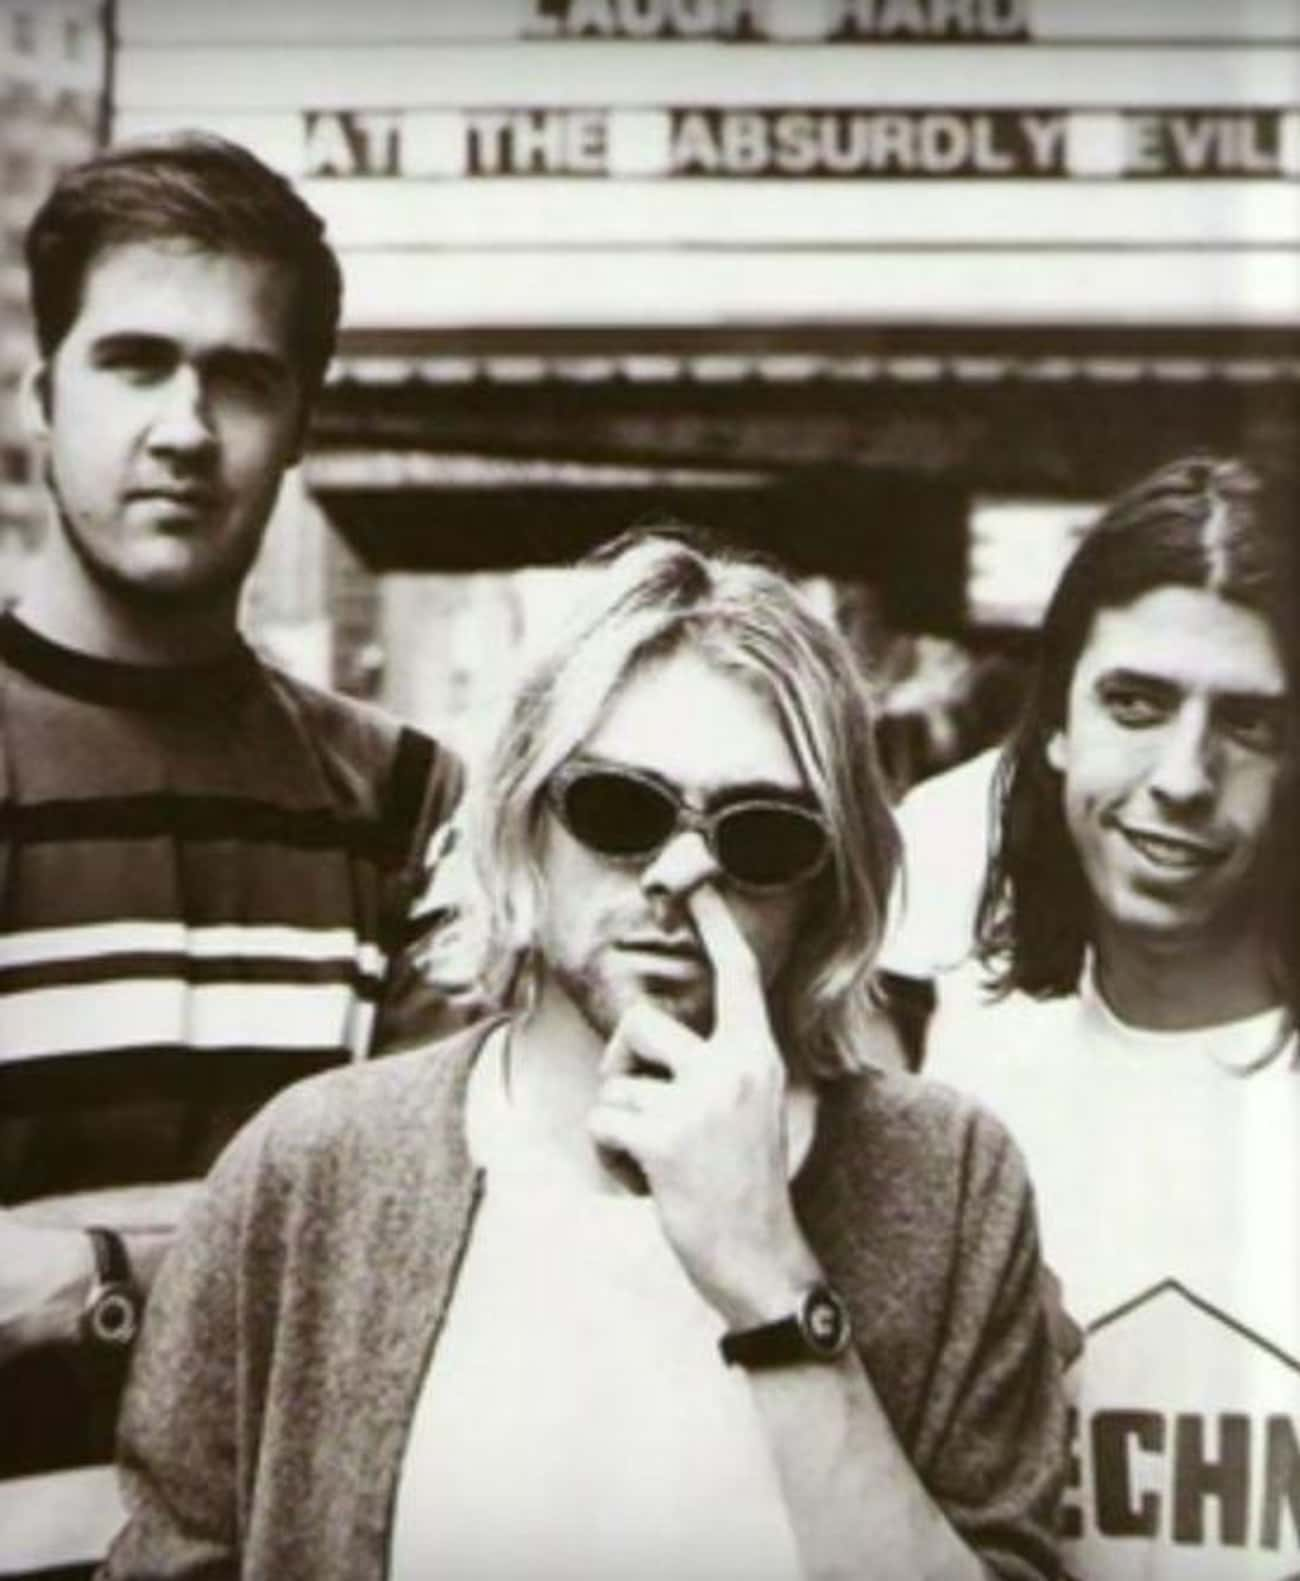 Dave Grohl Taught Kurt Cobain  is listed (or ranked) 4 on the list 15 Crazy But True Stories About Nirvana